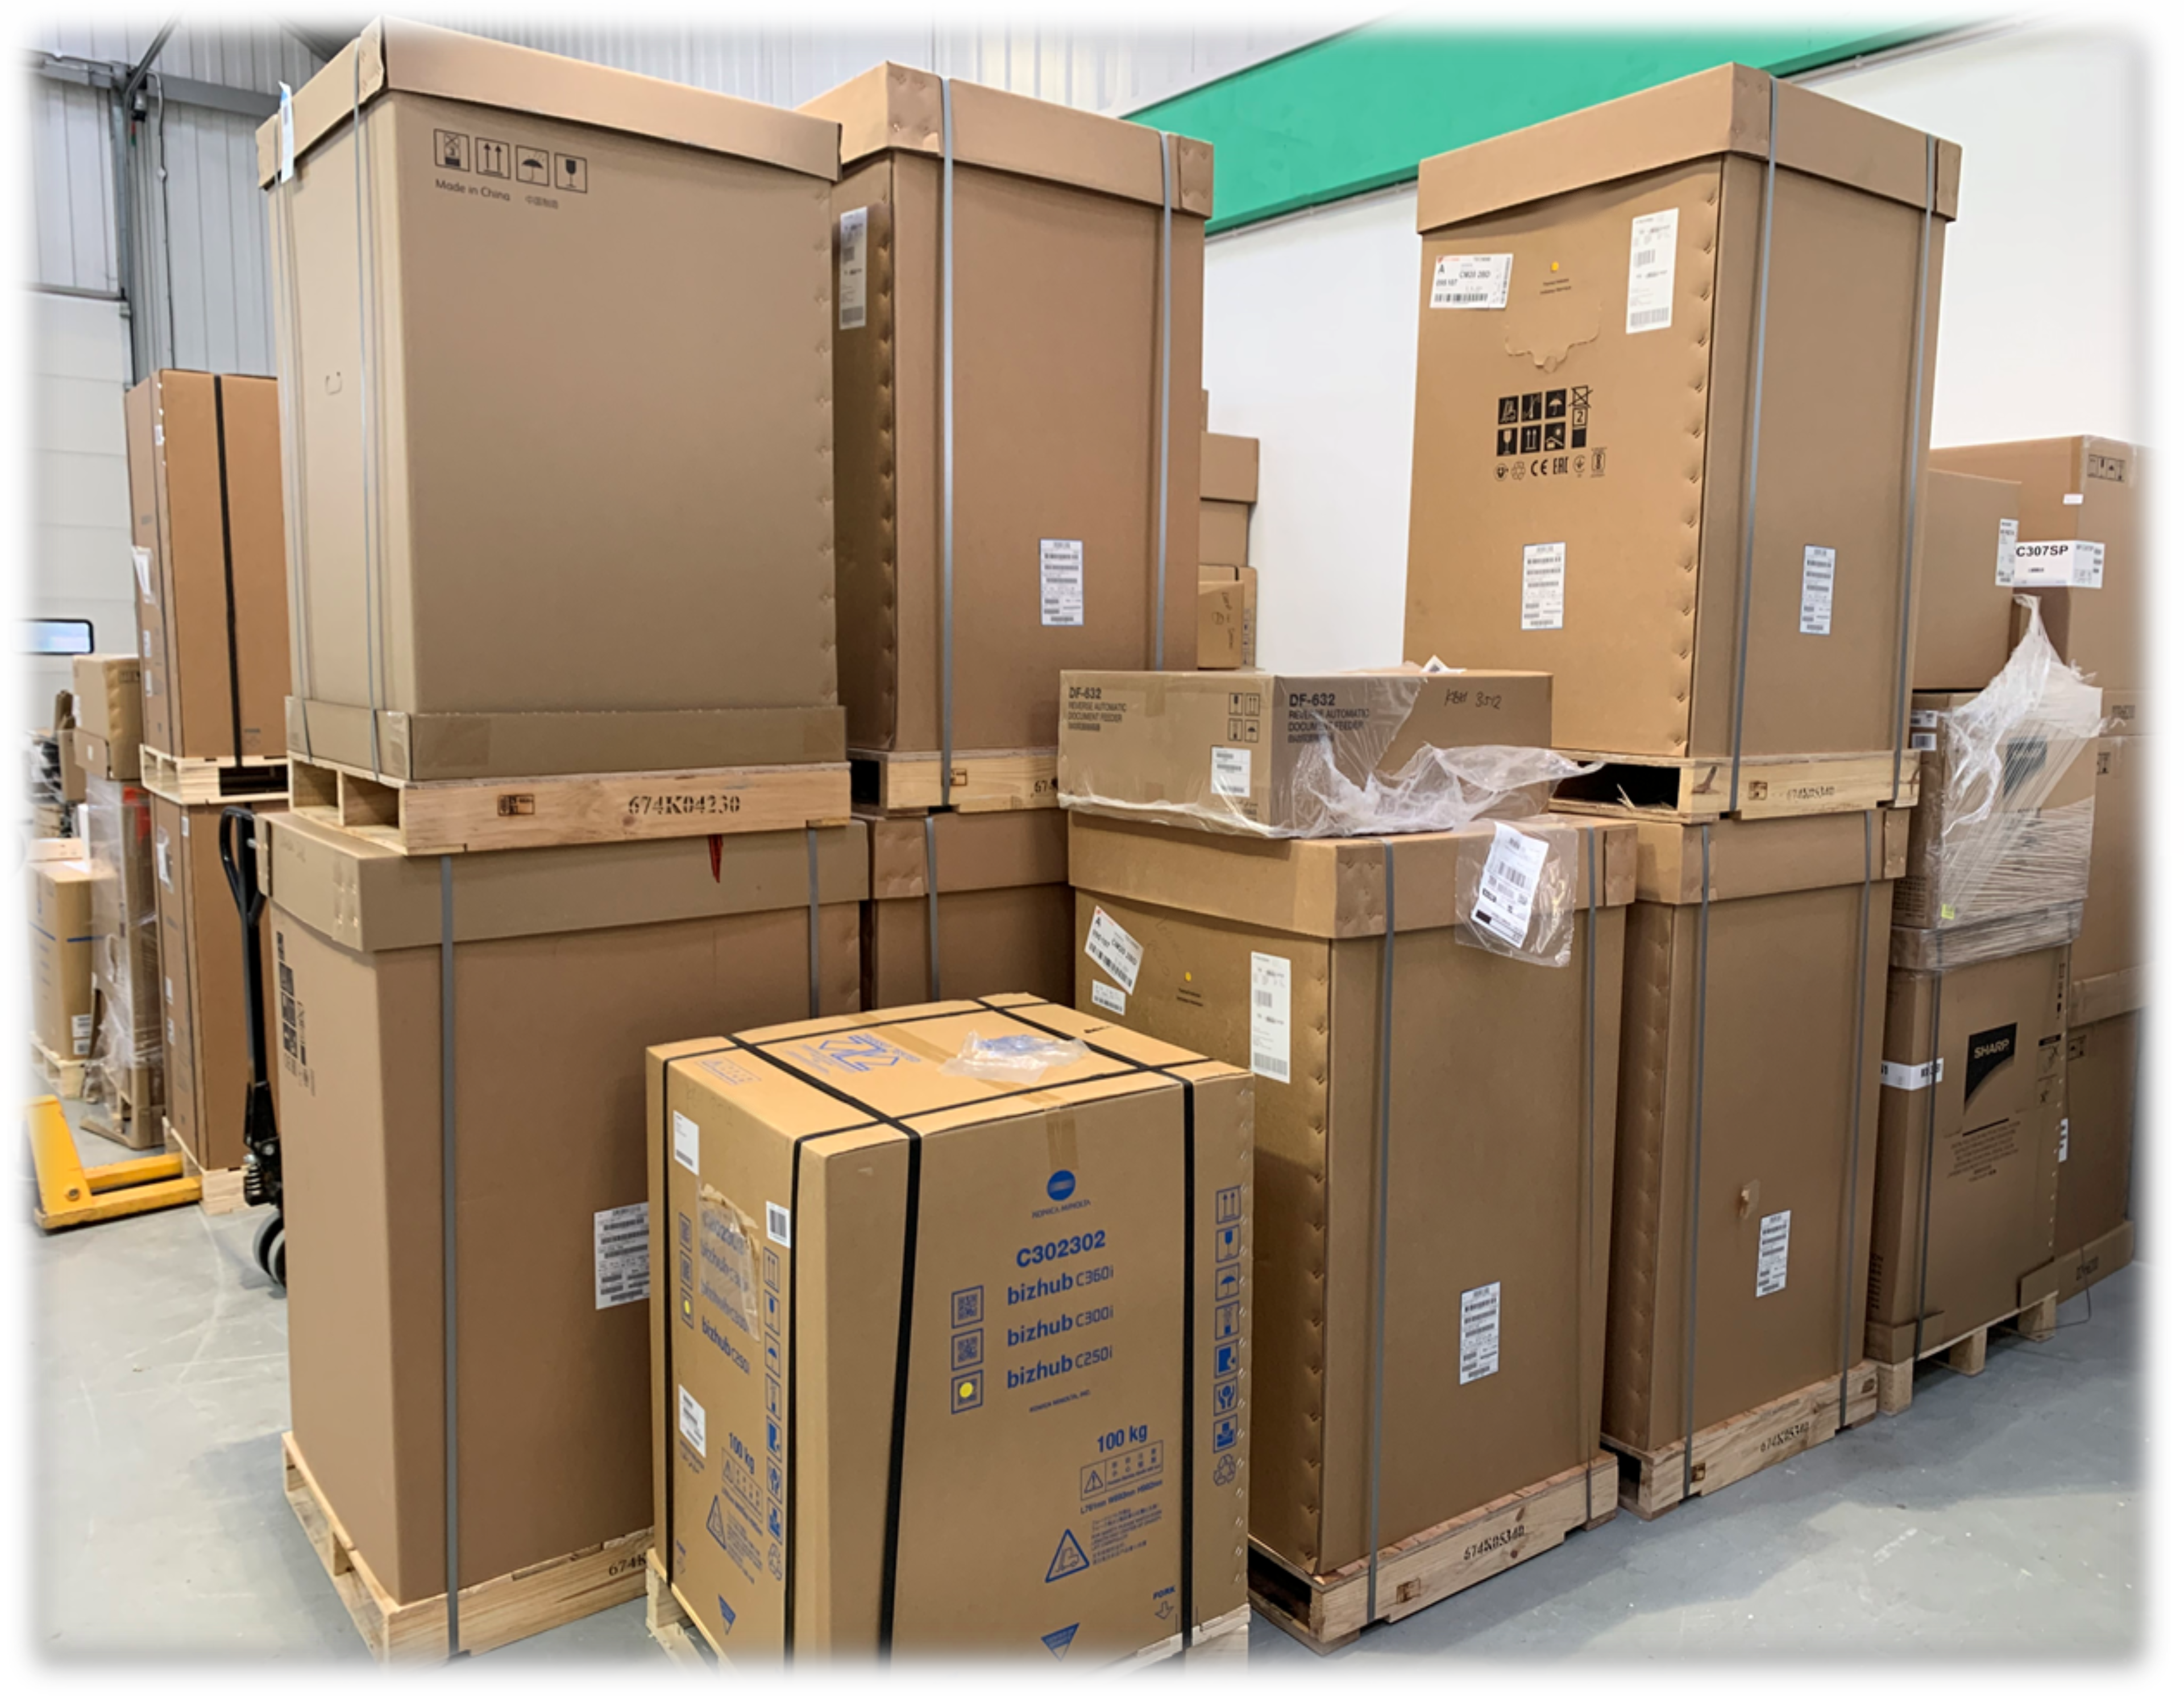 Tecserv are now accepting deliveries of new boxed equipment at all of our depots!